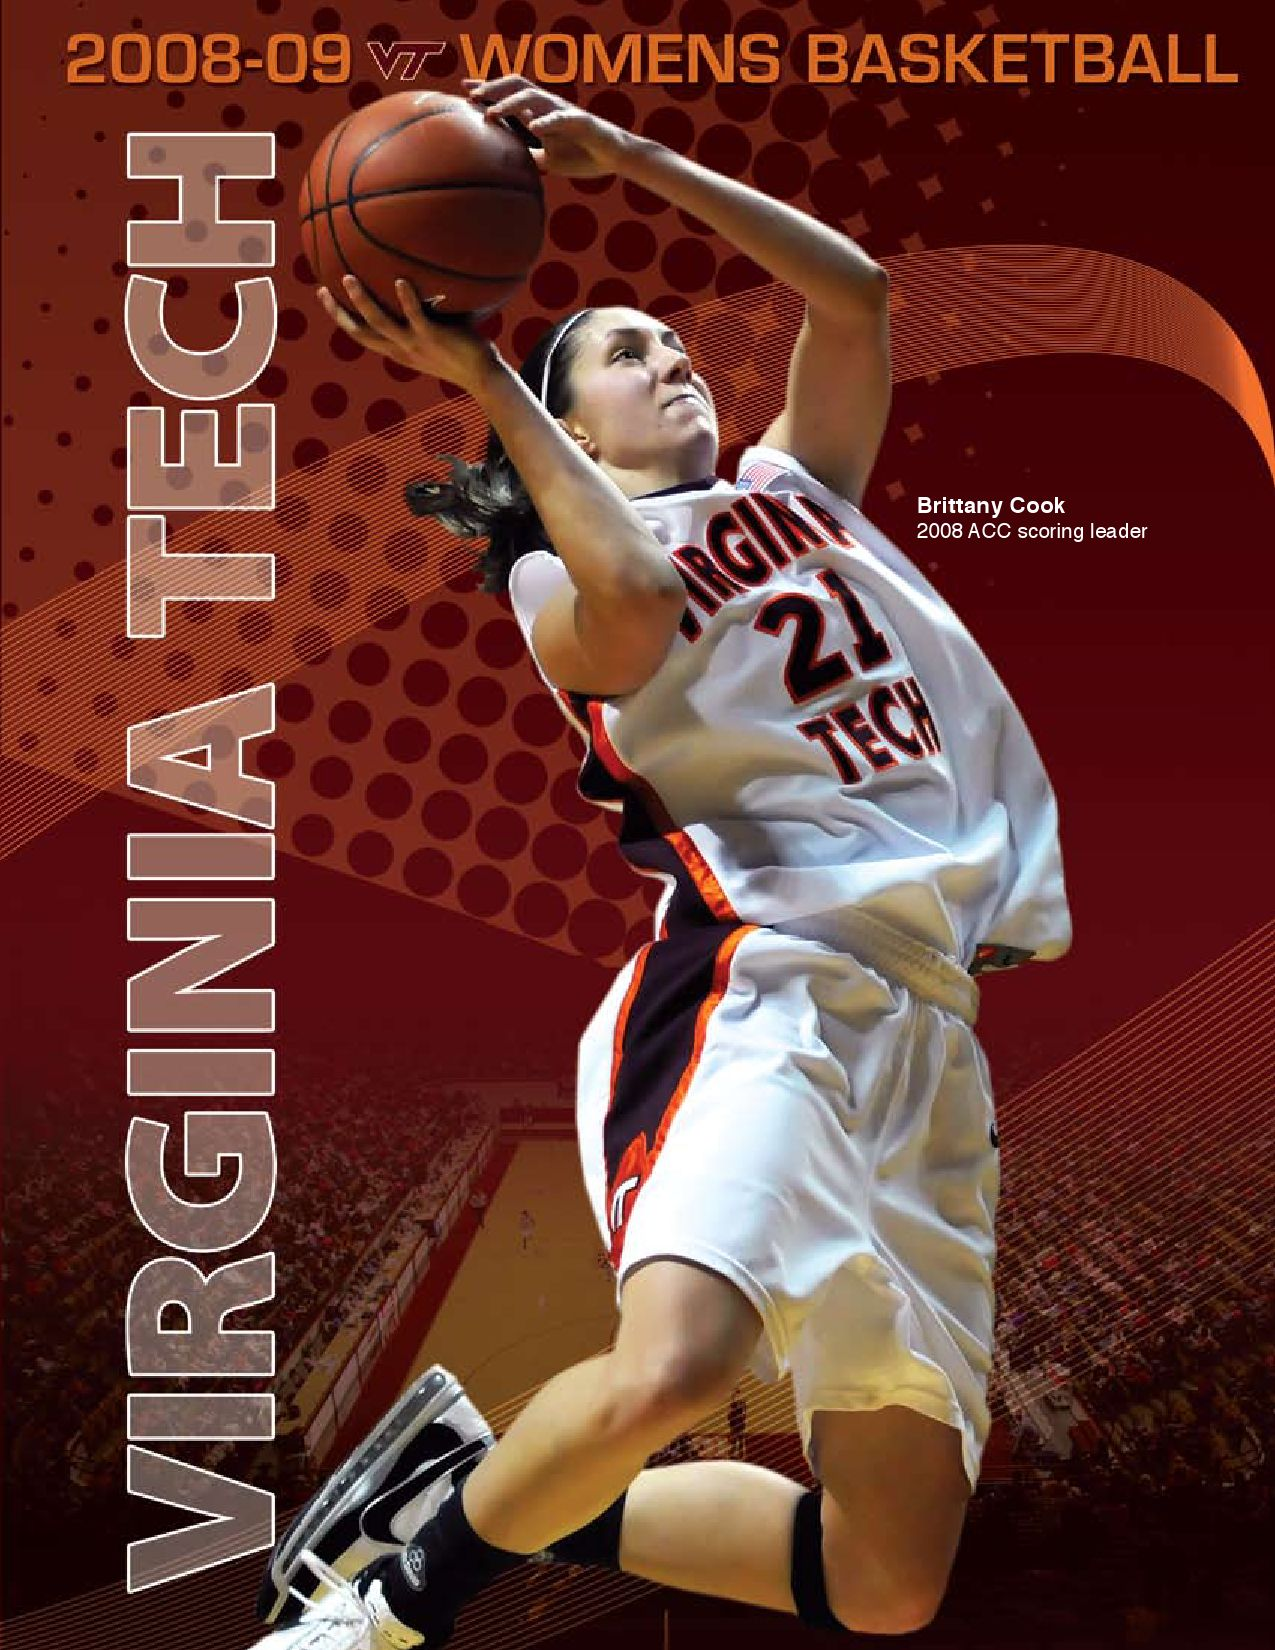 low priced eb21c d6eb5 2008-09 Virginia Tech Women s Basketball Media Guide by Virginia Tech  Athletics - issuu